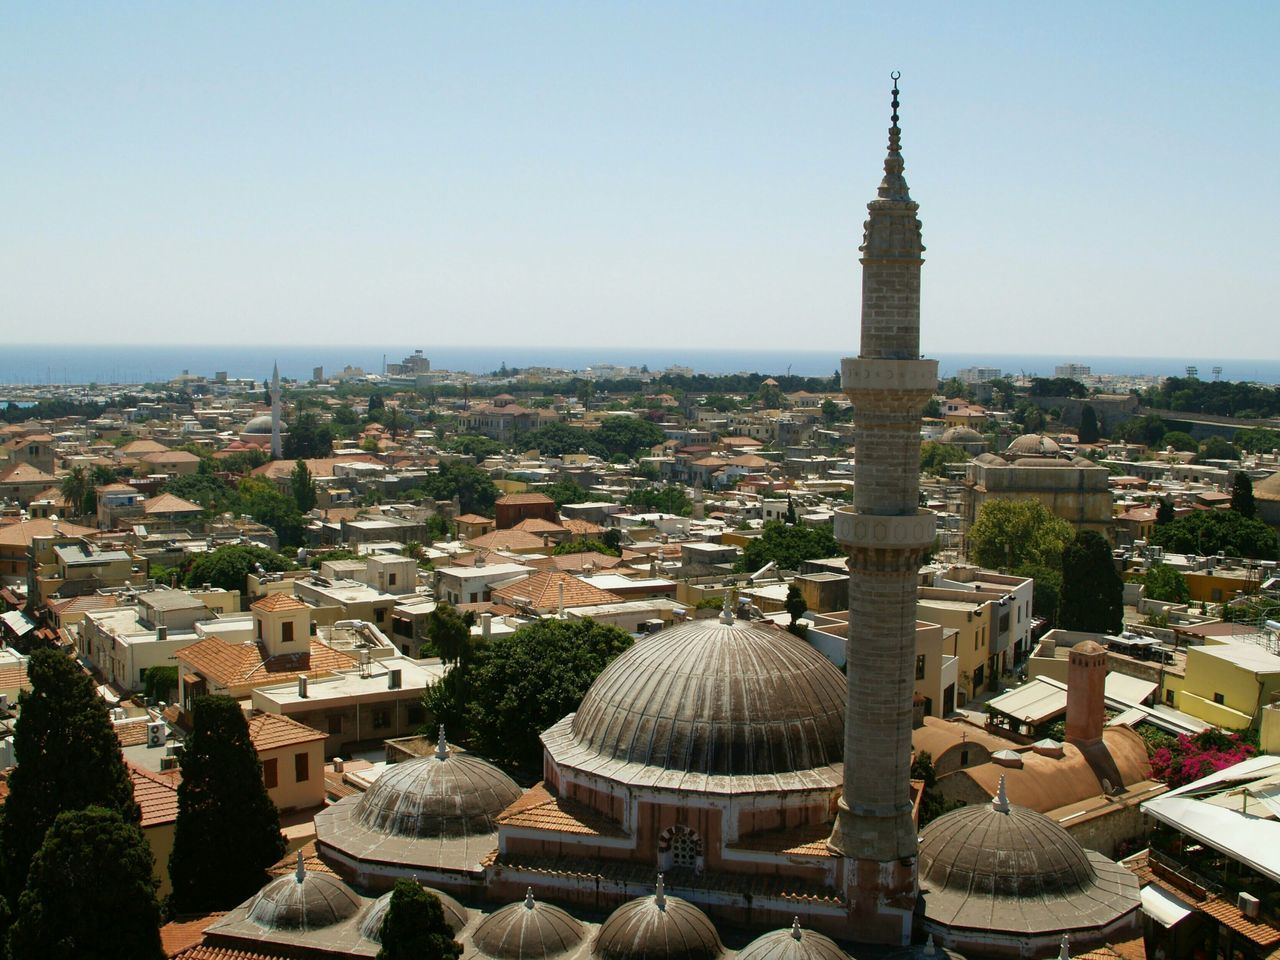 A Bird's Eye View Rhodos Minaret Greece Cityscape From The Tower Rhodos, Greece  Rodos City Rhodos City Traveling Beautyful View View